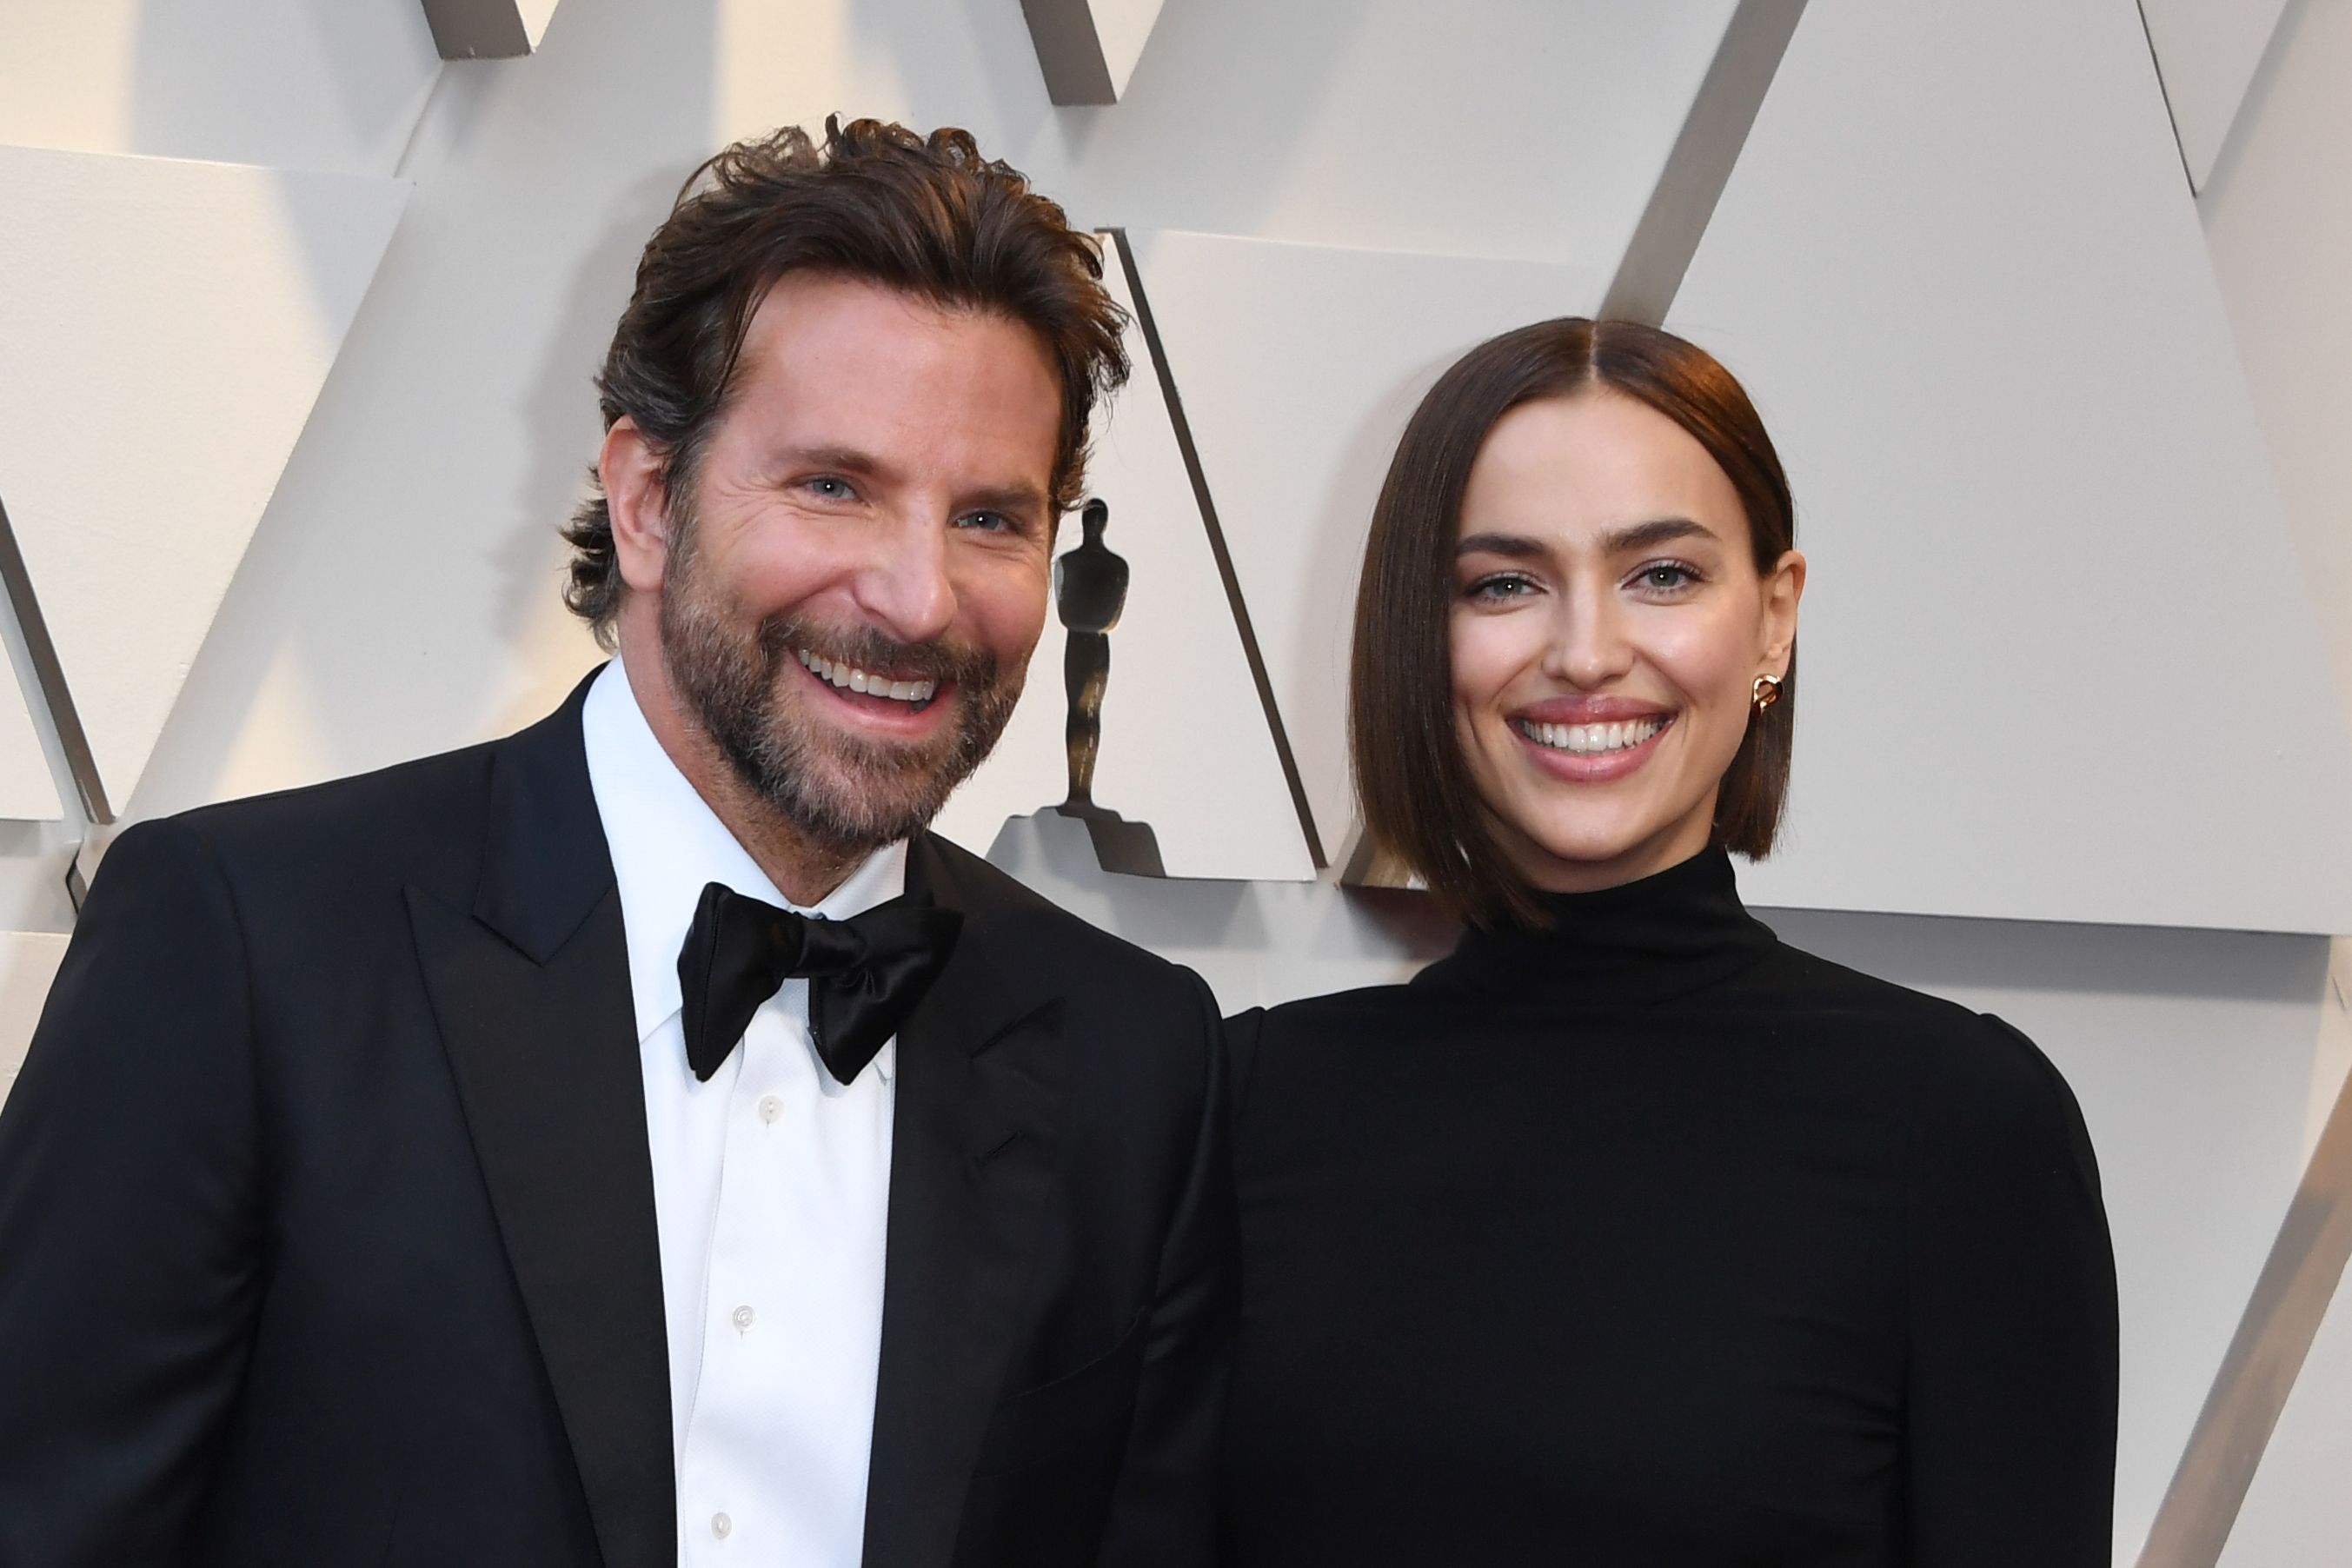 ec88ad52fc9 8 Facts About Bradley Cooper and Girlfriend Irina Shayk